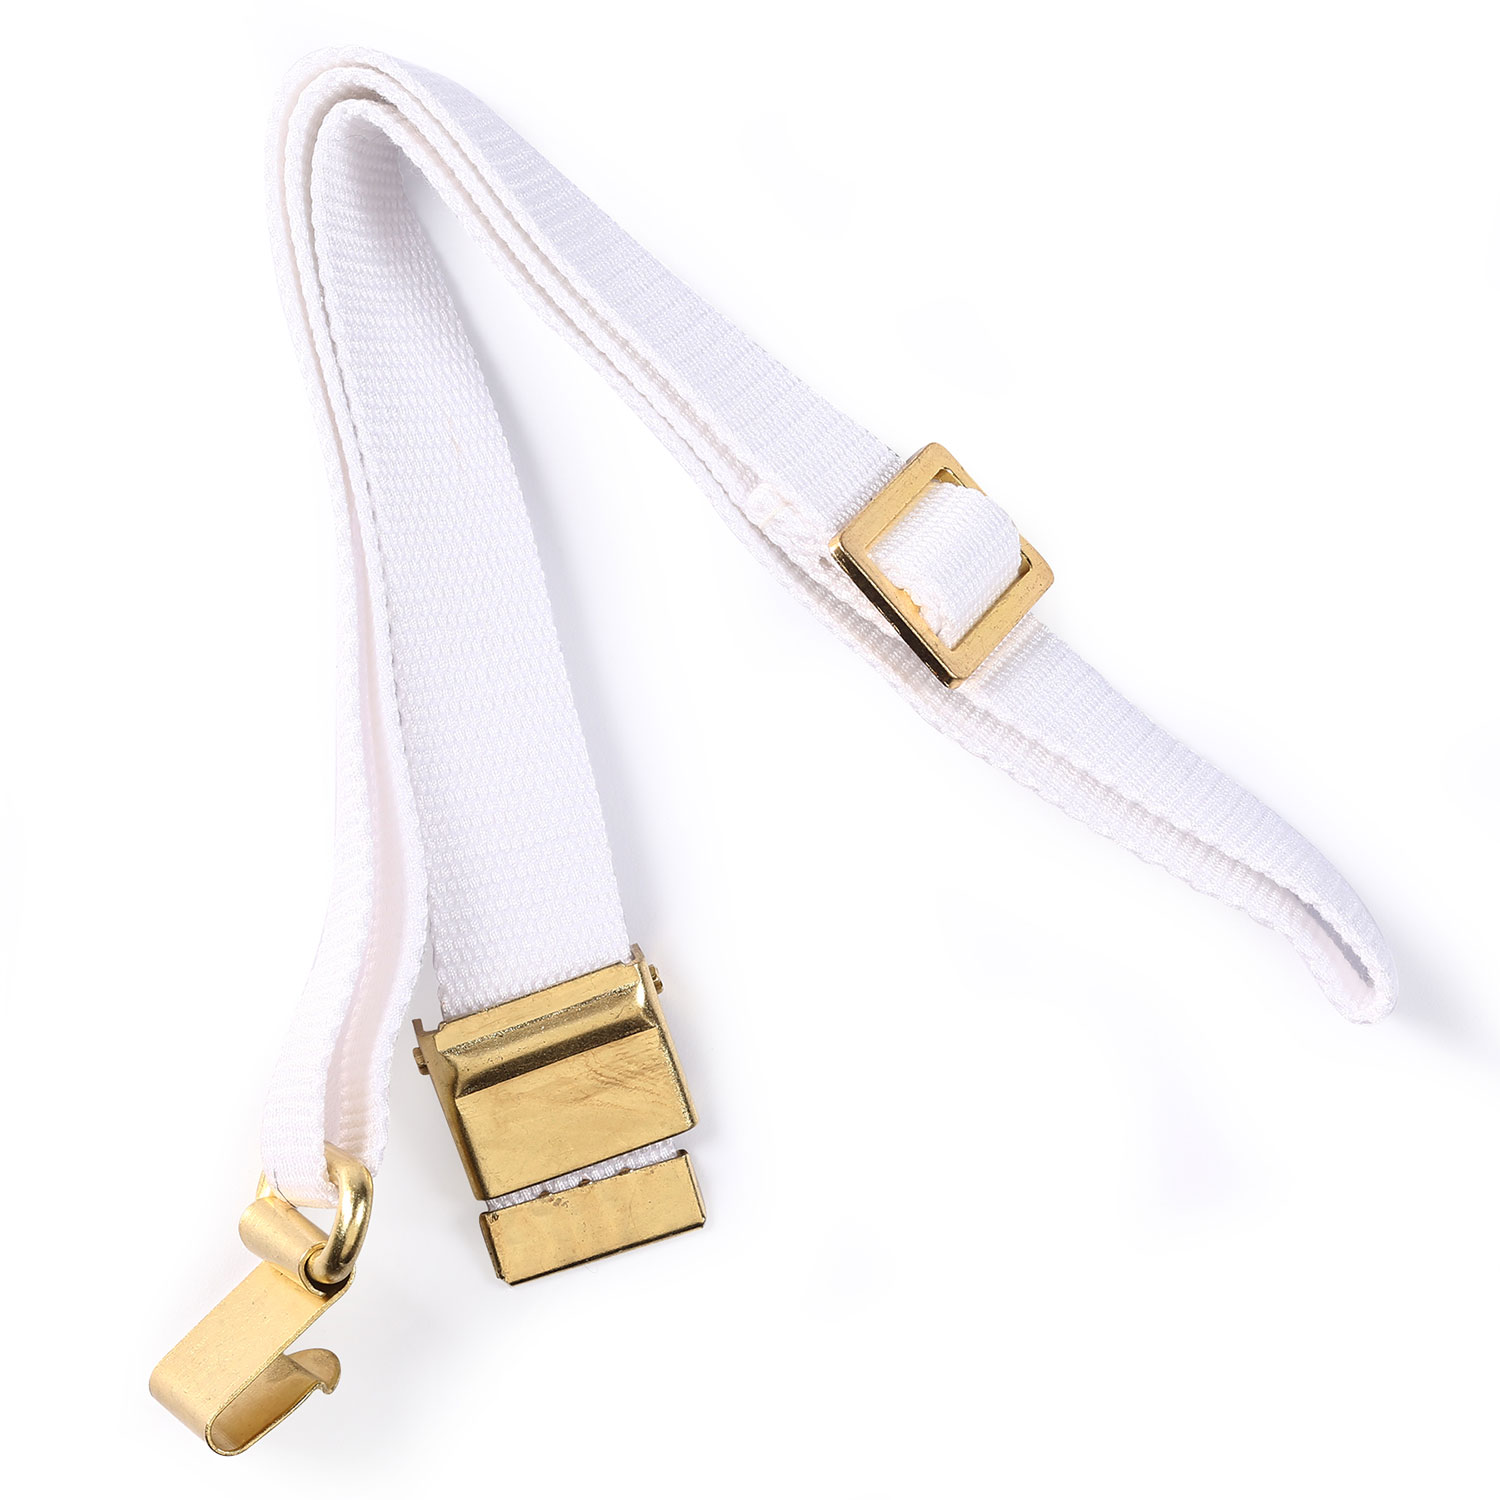 Parris MFG White Web Rifle Sling for Parade Drill Replica Ri